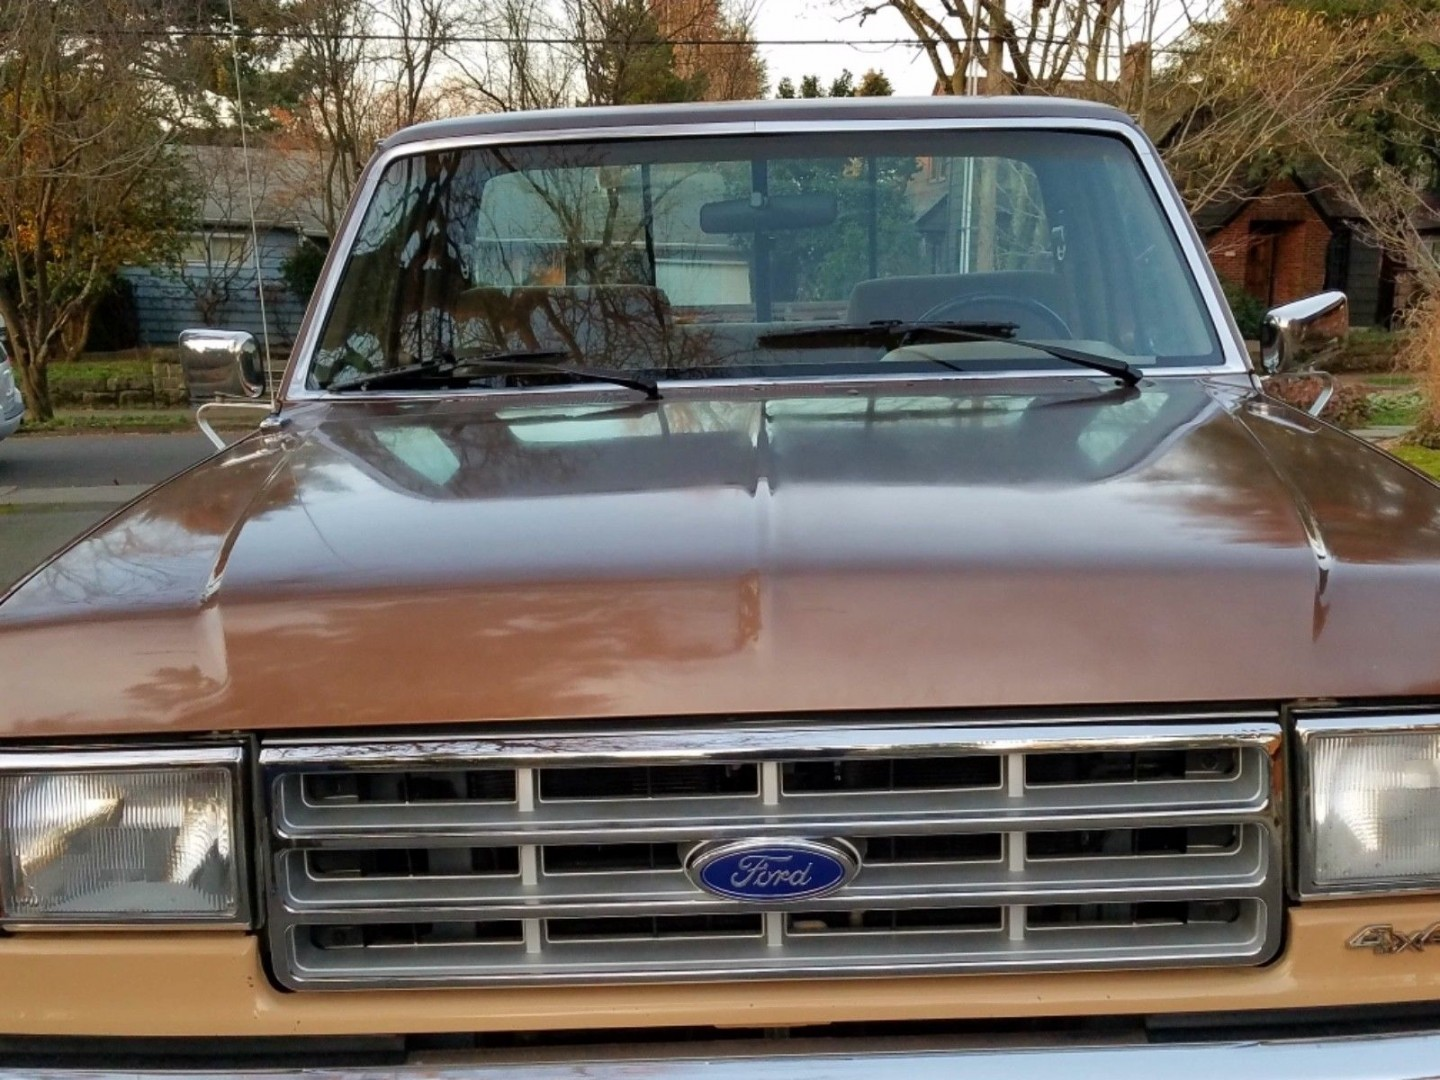 Ford F250 1987 4x4 LIKE NEW ! - MBB Collection